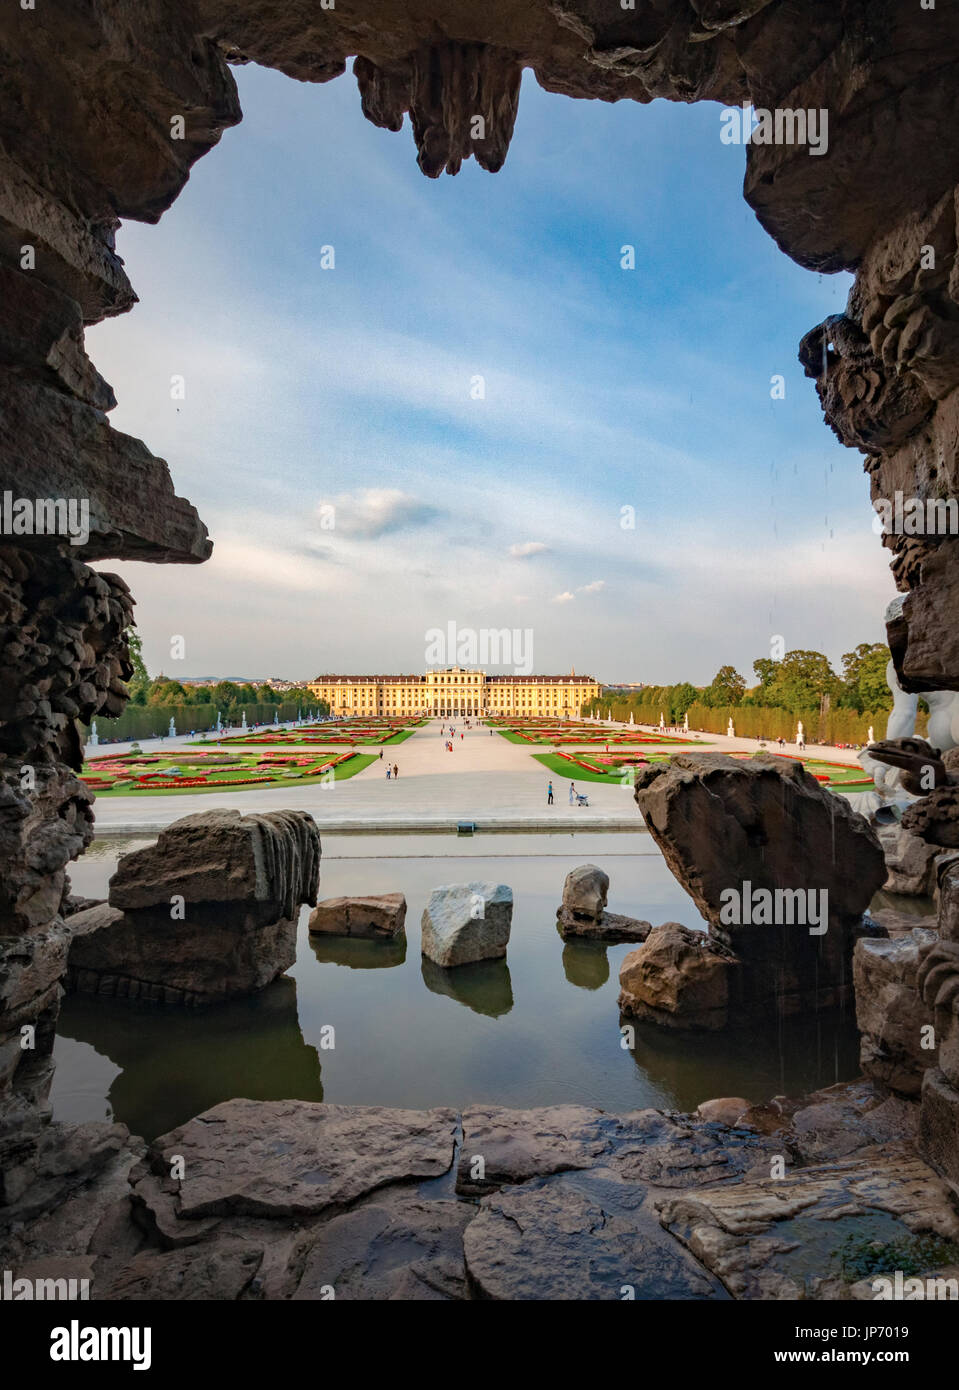 The Schonbrunn palace as viewed from the sculpture of Neptune - Stock Image